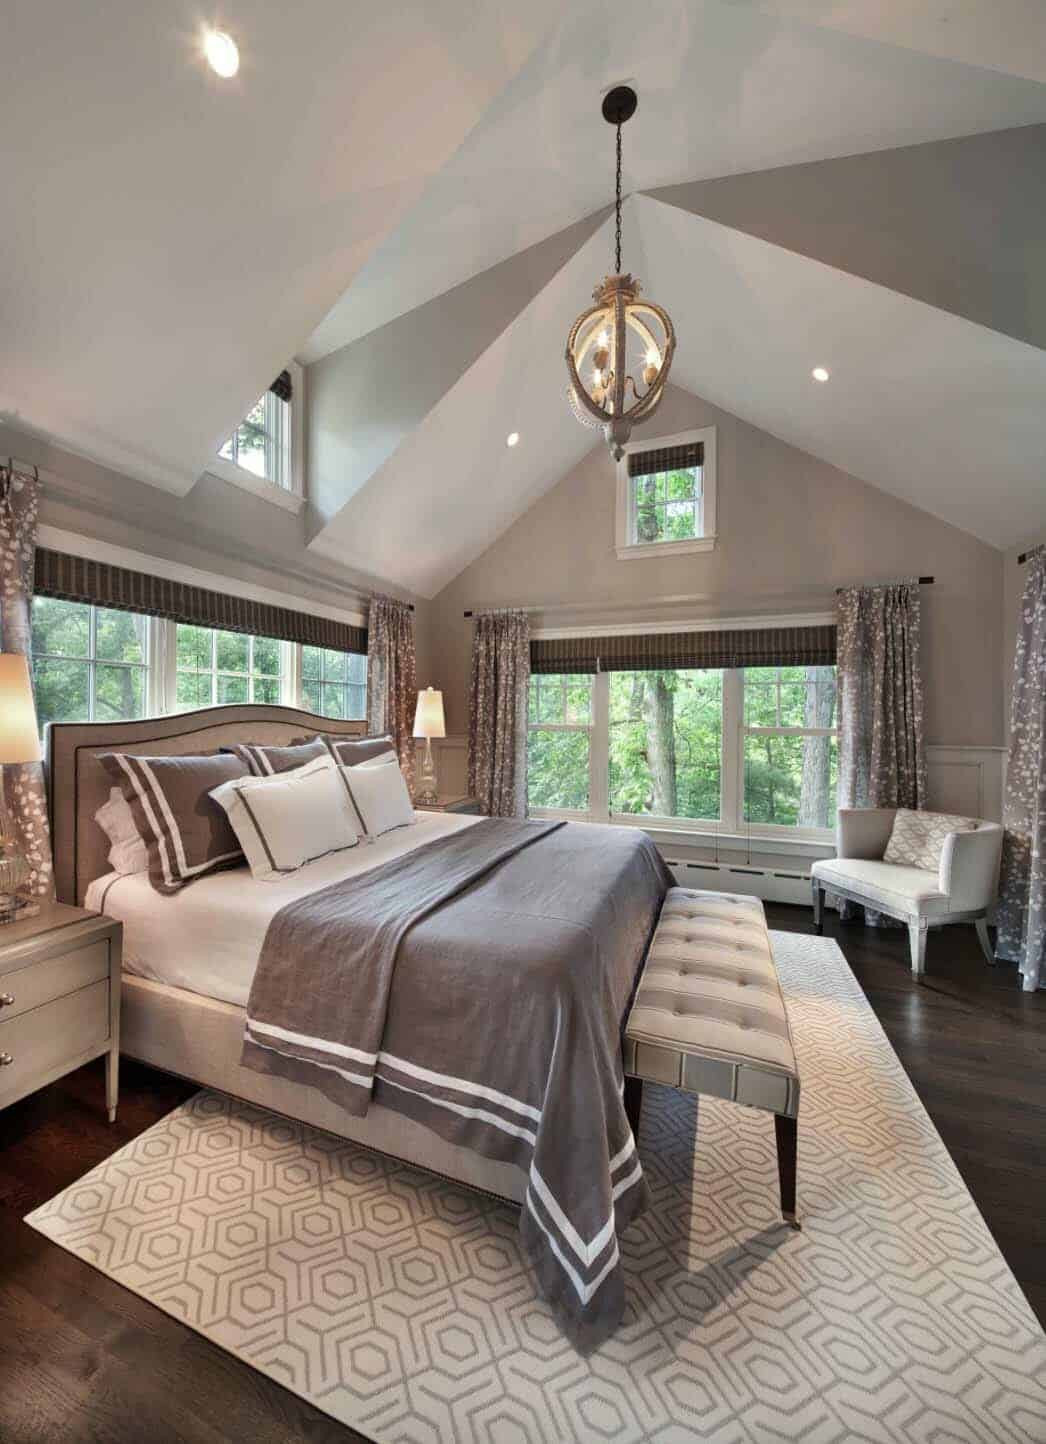 Best ideas about Bedroom Color Schemes . Save or Pin 25 Absolutely stunning master bedroom color scheme ideas Now.